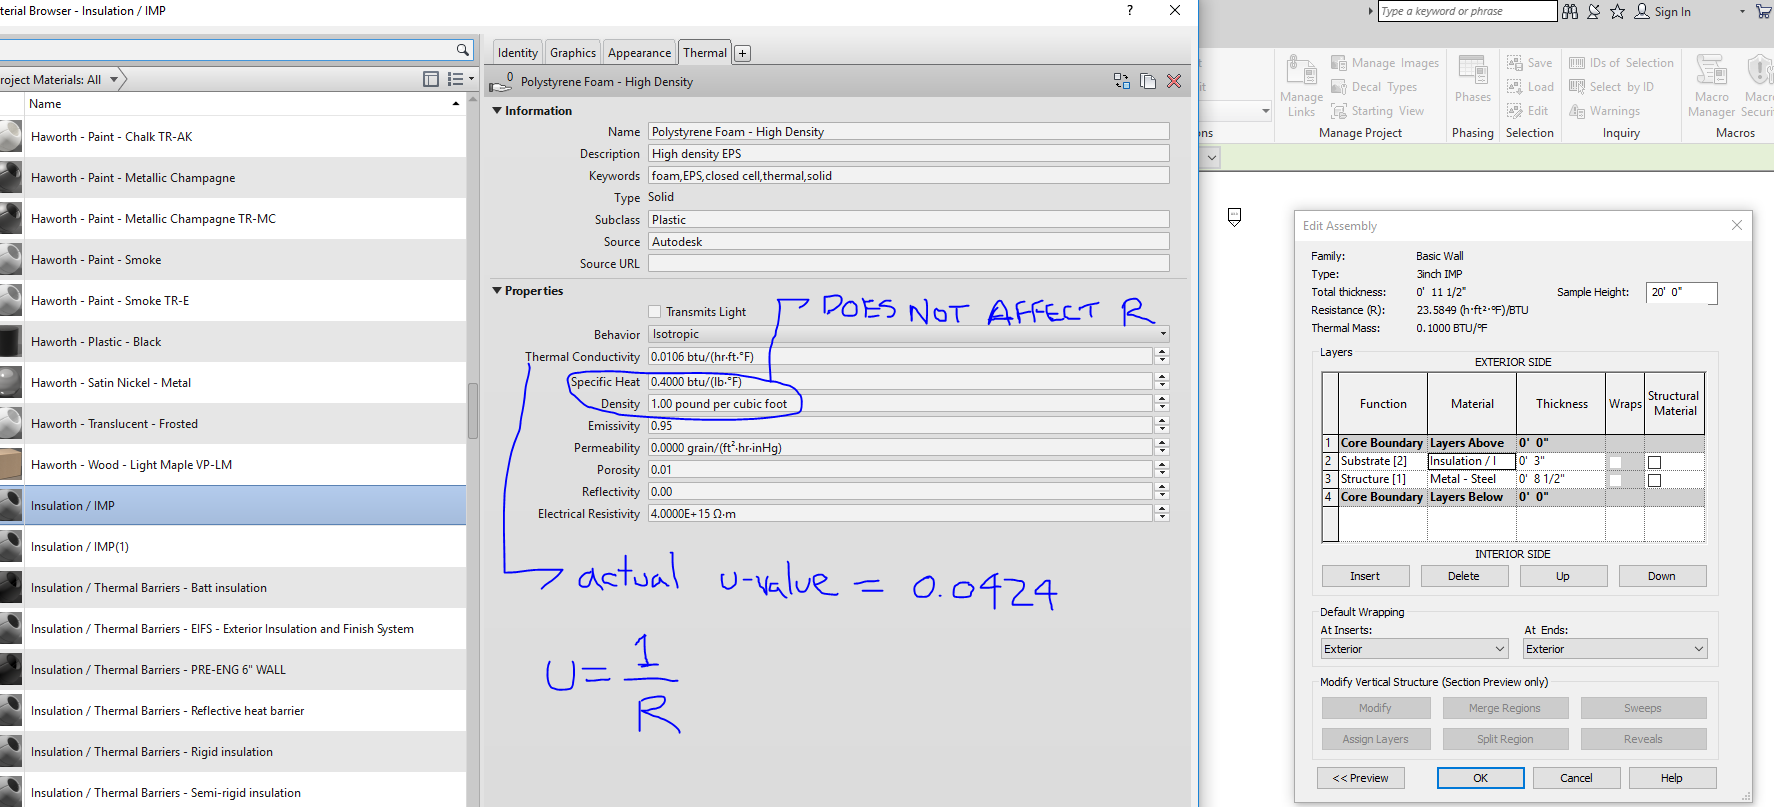 Solved: Revit Analytical Properties indicate an R value when